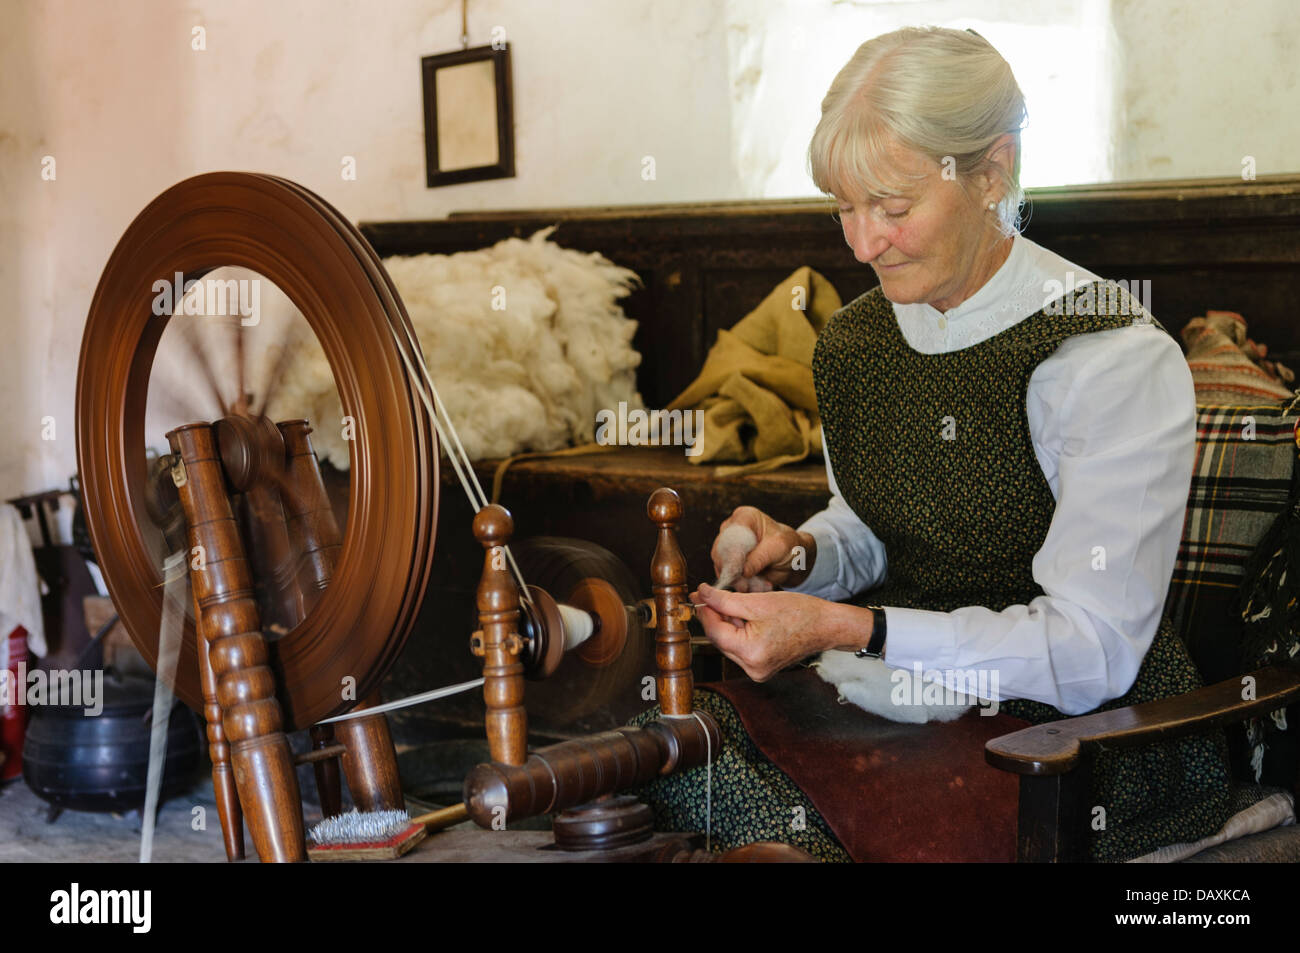 Irish woman in a cottage spinning wool - Stock Image